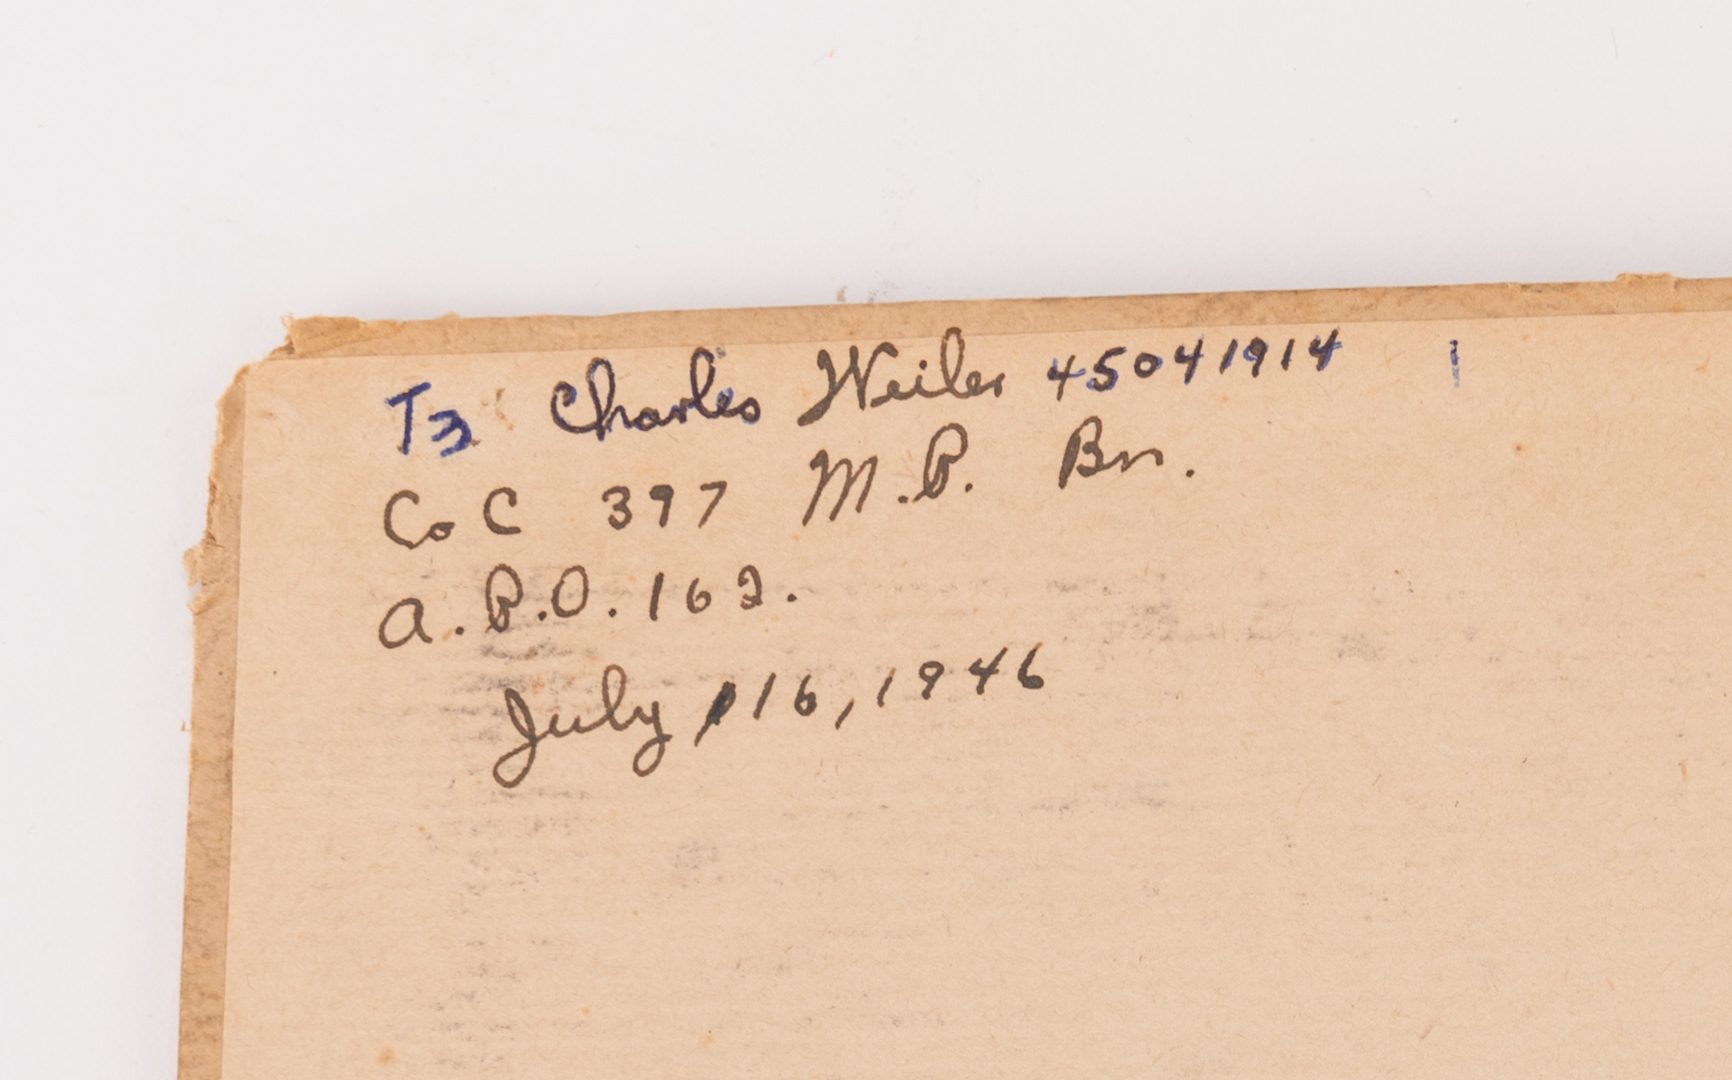 Lot 779: Post WWII Archive of Charles Weiler, 47 items total